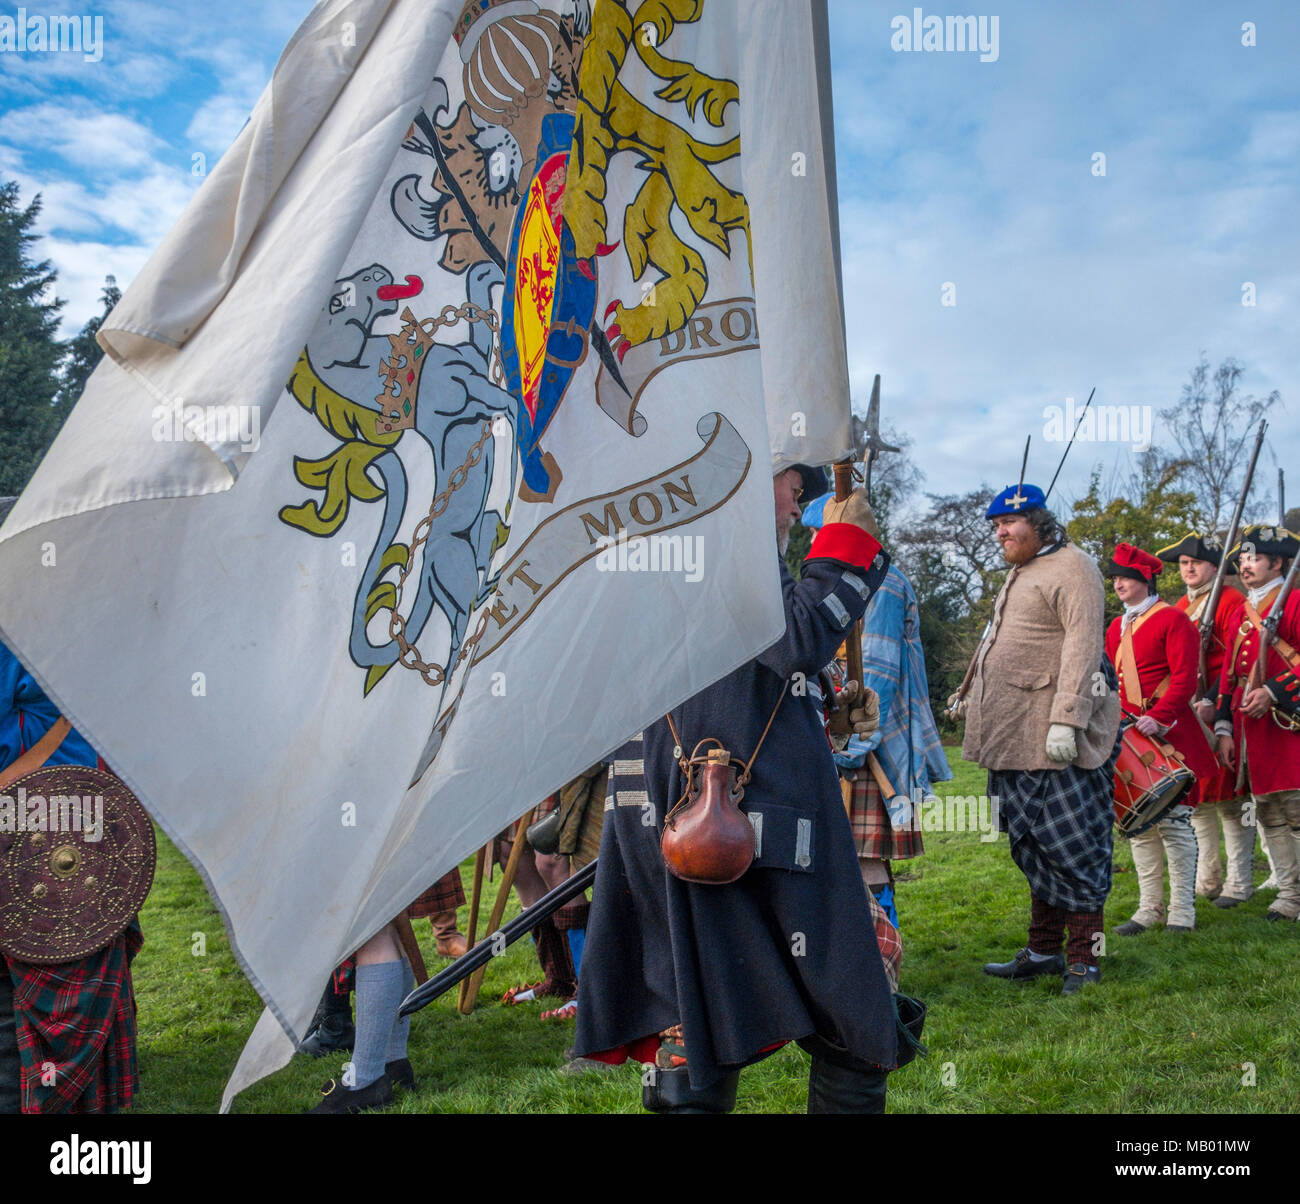 Supporters of Charles Edward Stuart better known as Bonnie Prince Charlie around their colours at a reenactment of the Jacobite rising of 1745. Stock Photo